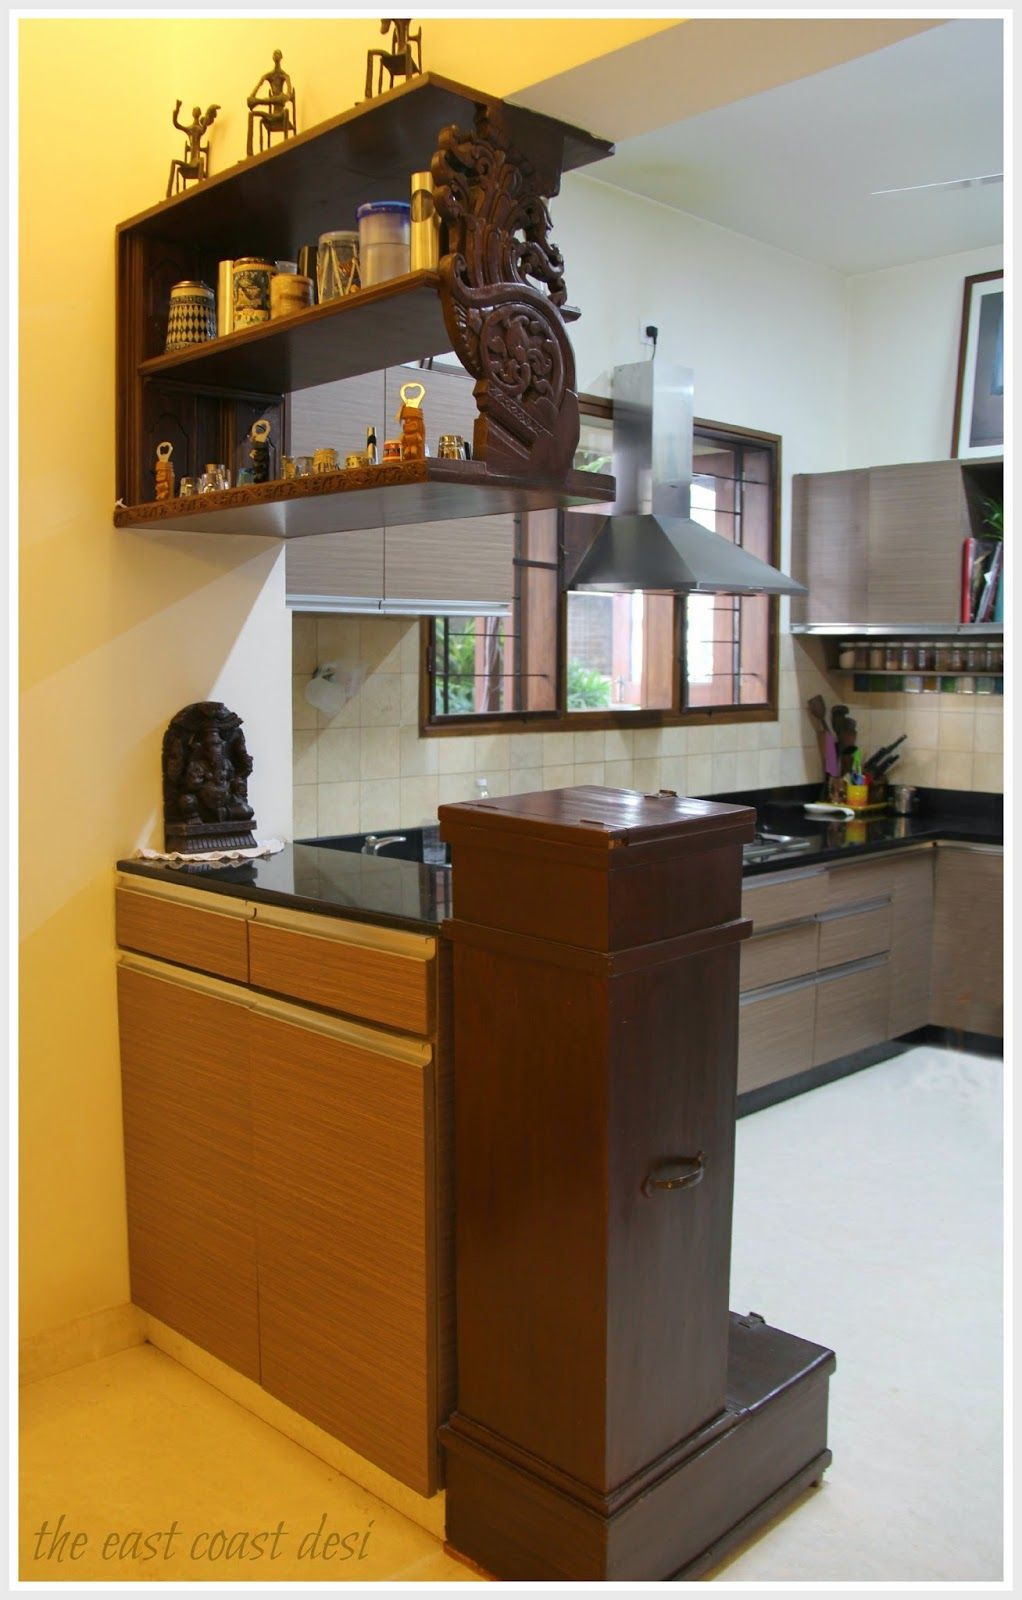 Kitchen shelving units   year old grain storage unit together with a shelf scored at an